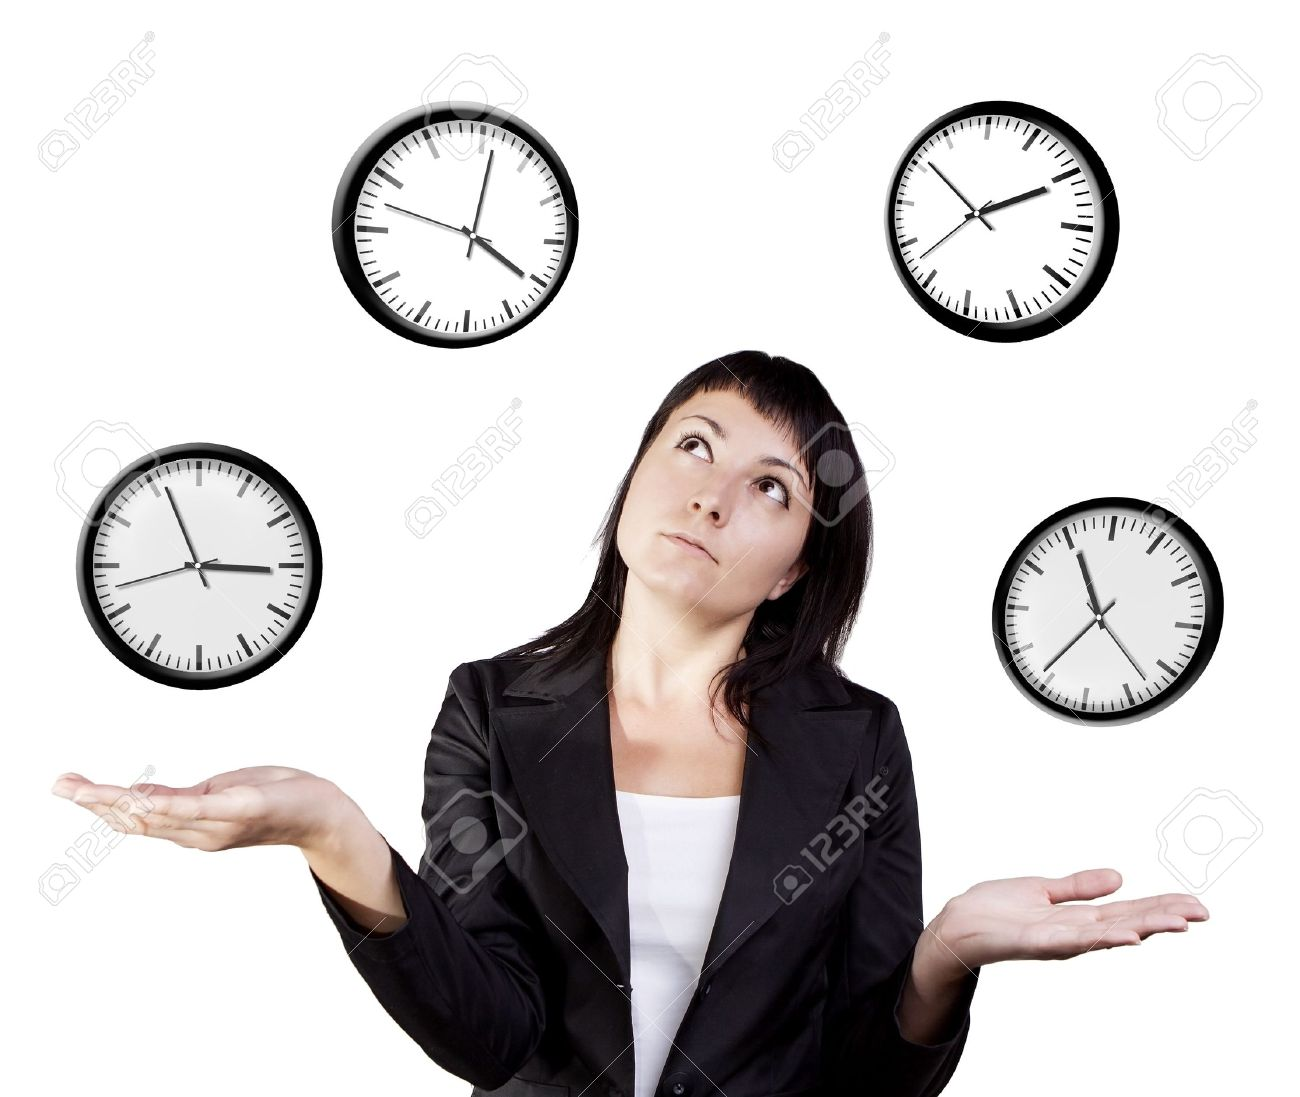 A young woman juggling the management of time  Isolated on a white background Stock Photo - 15217432